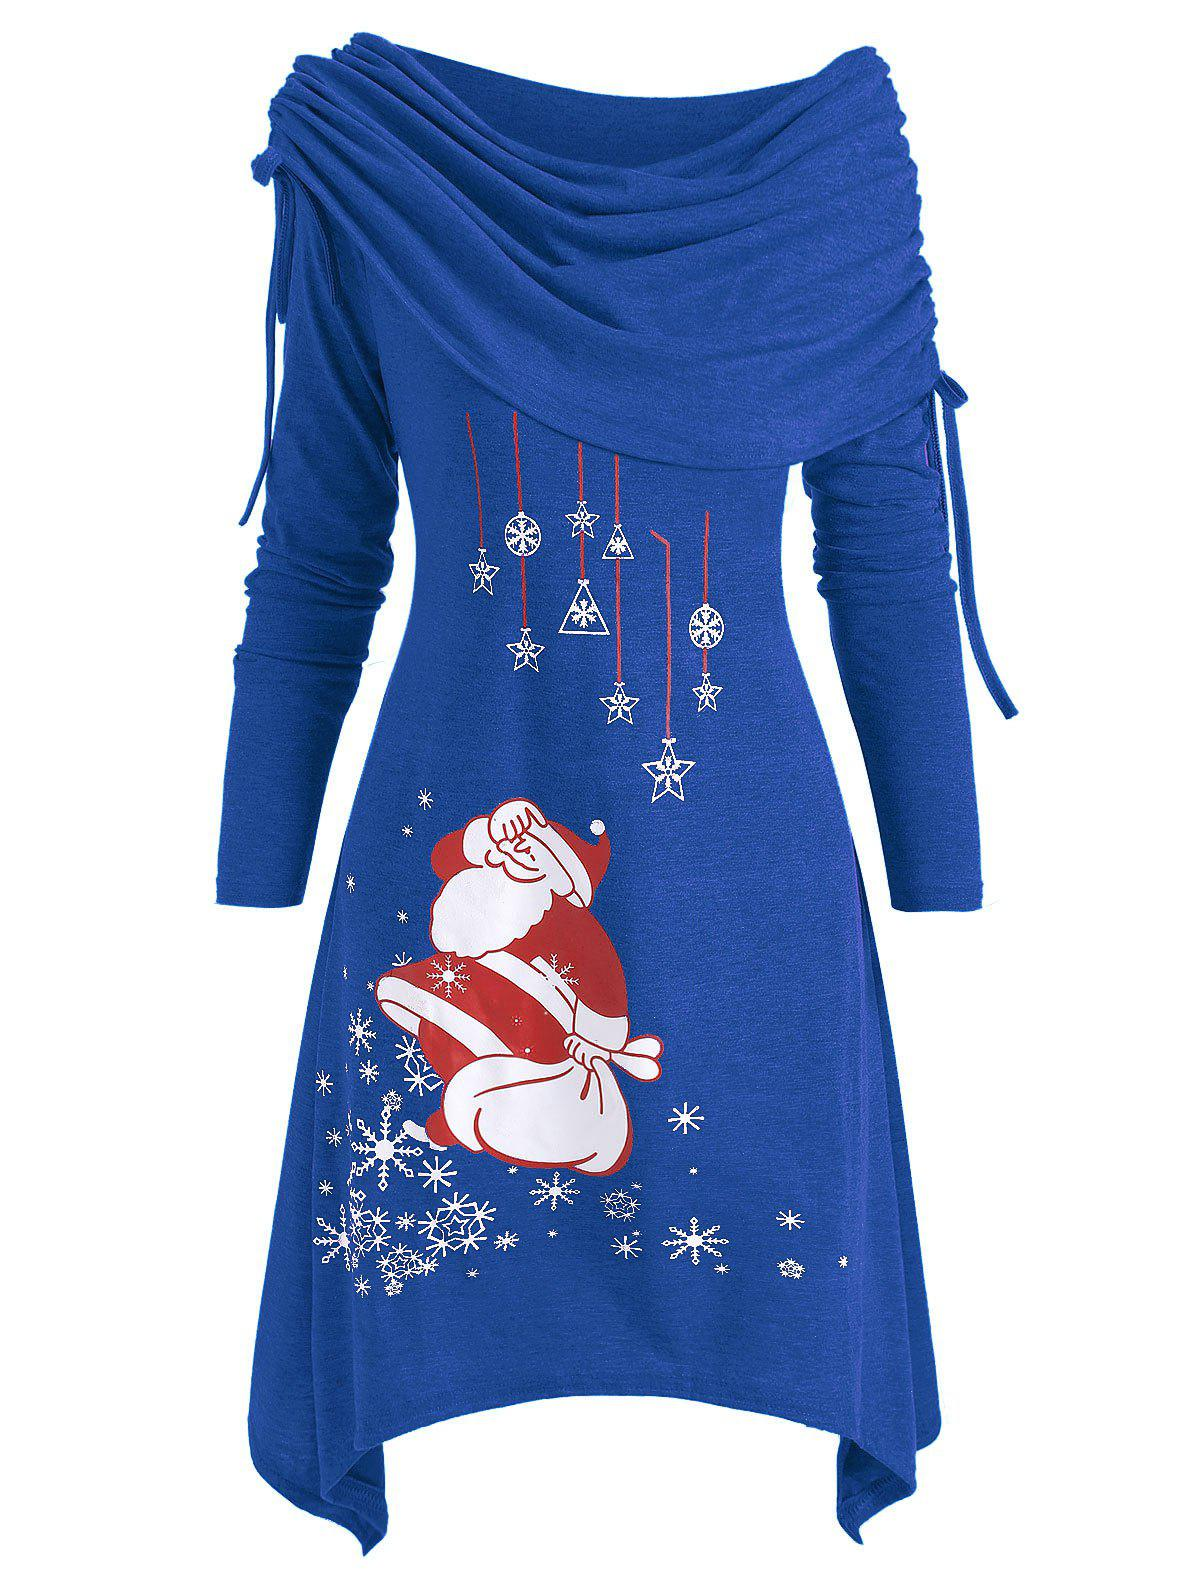 Christmas Santa Claus Foldover Off Shoulder Asymmetrical Dress - BLUE XL